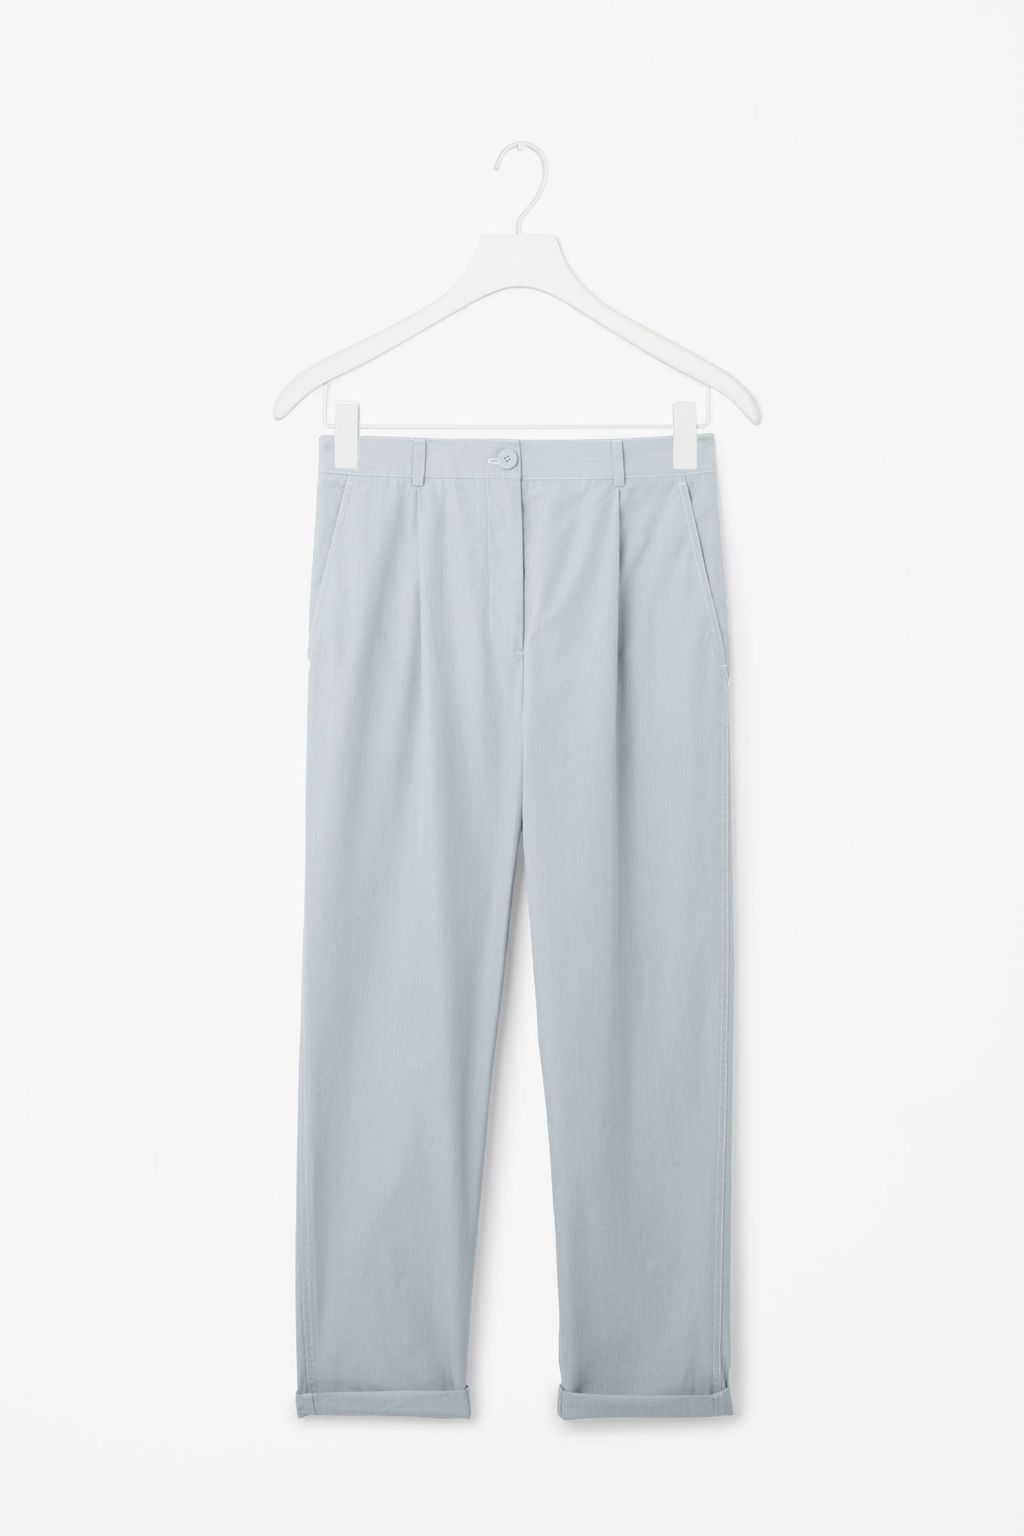 Straight Chino Trousers - pattern: plain; waist: mid/regular rise; predominant colour: light grey; length: ankle length; style: chino; fibres: polyester/polyamide - 100%; texture group: crepes; fit: slim leg; pattern type: fabric; occasions: creative work; season: s/s 2016; wardrobe: basic